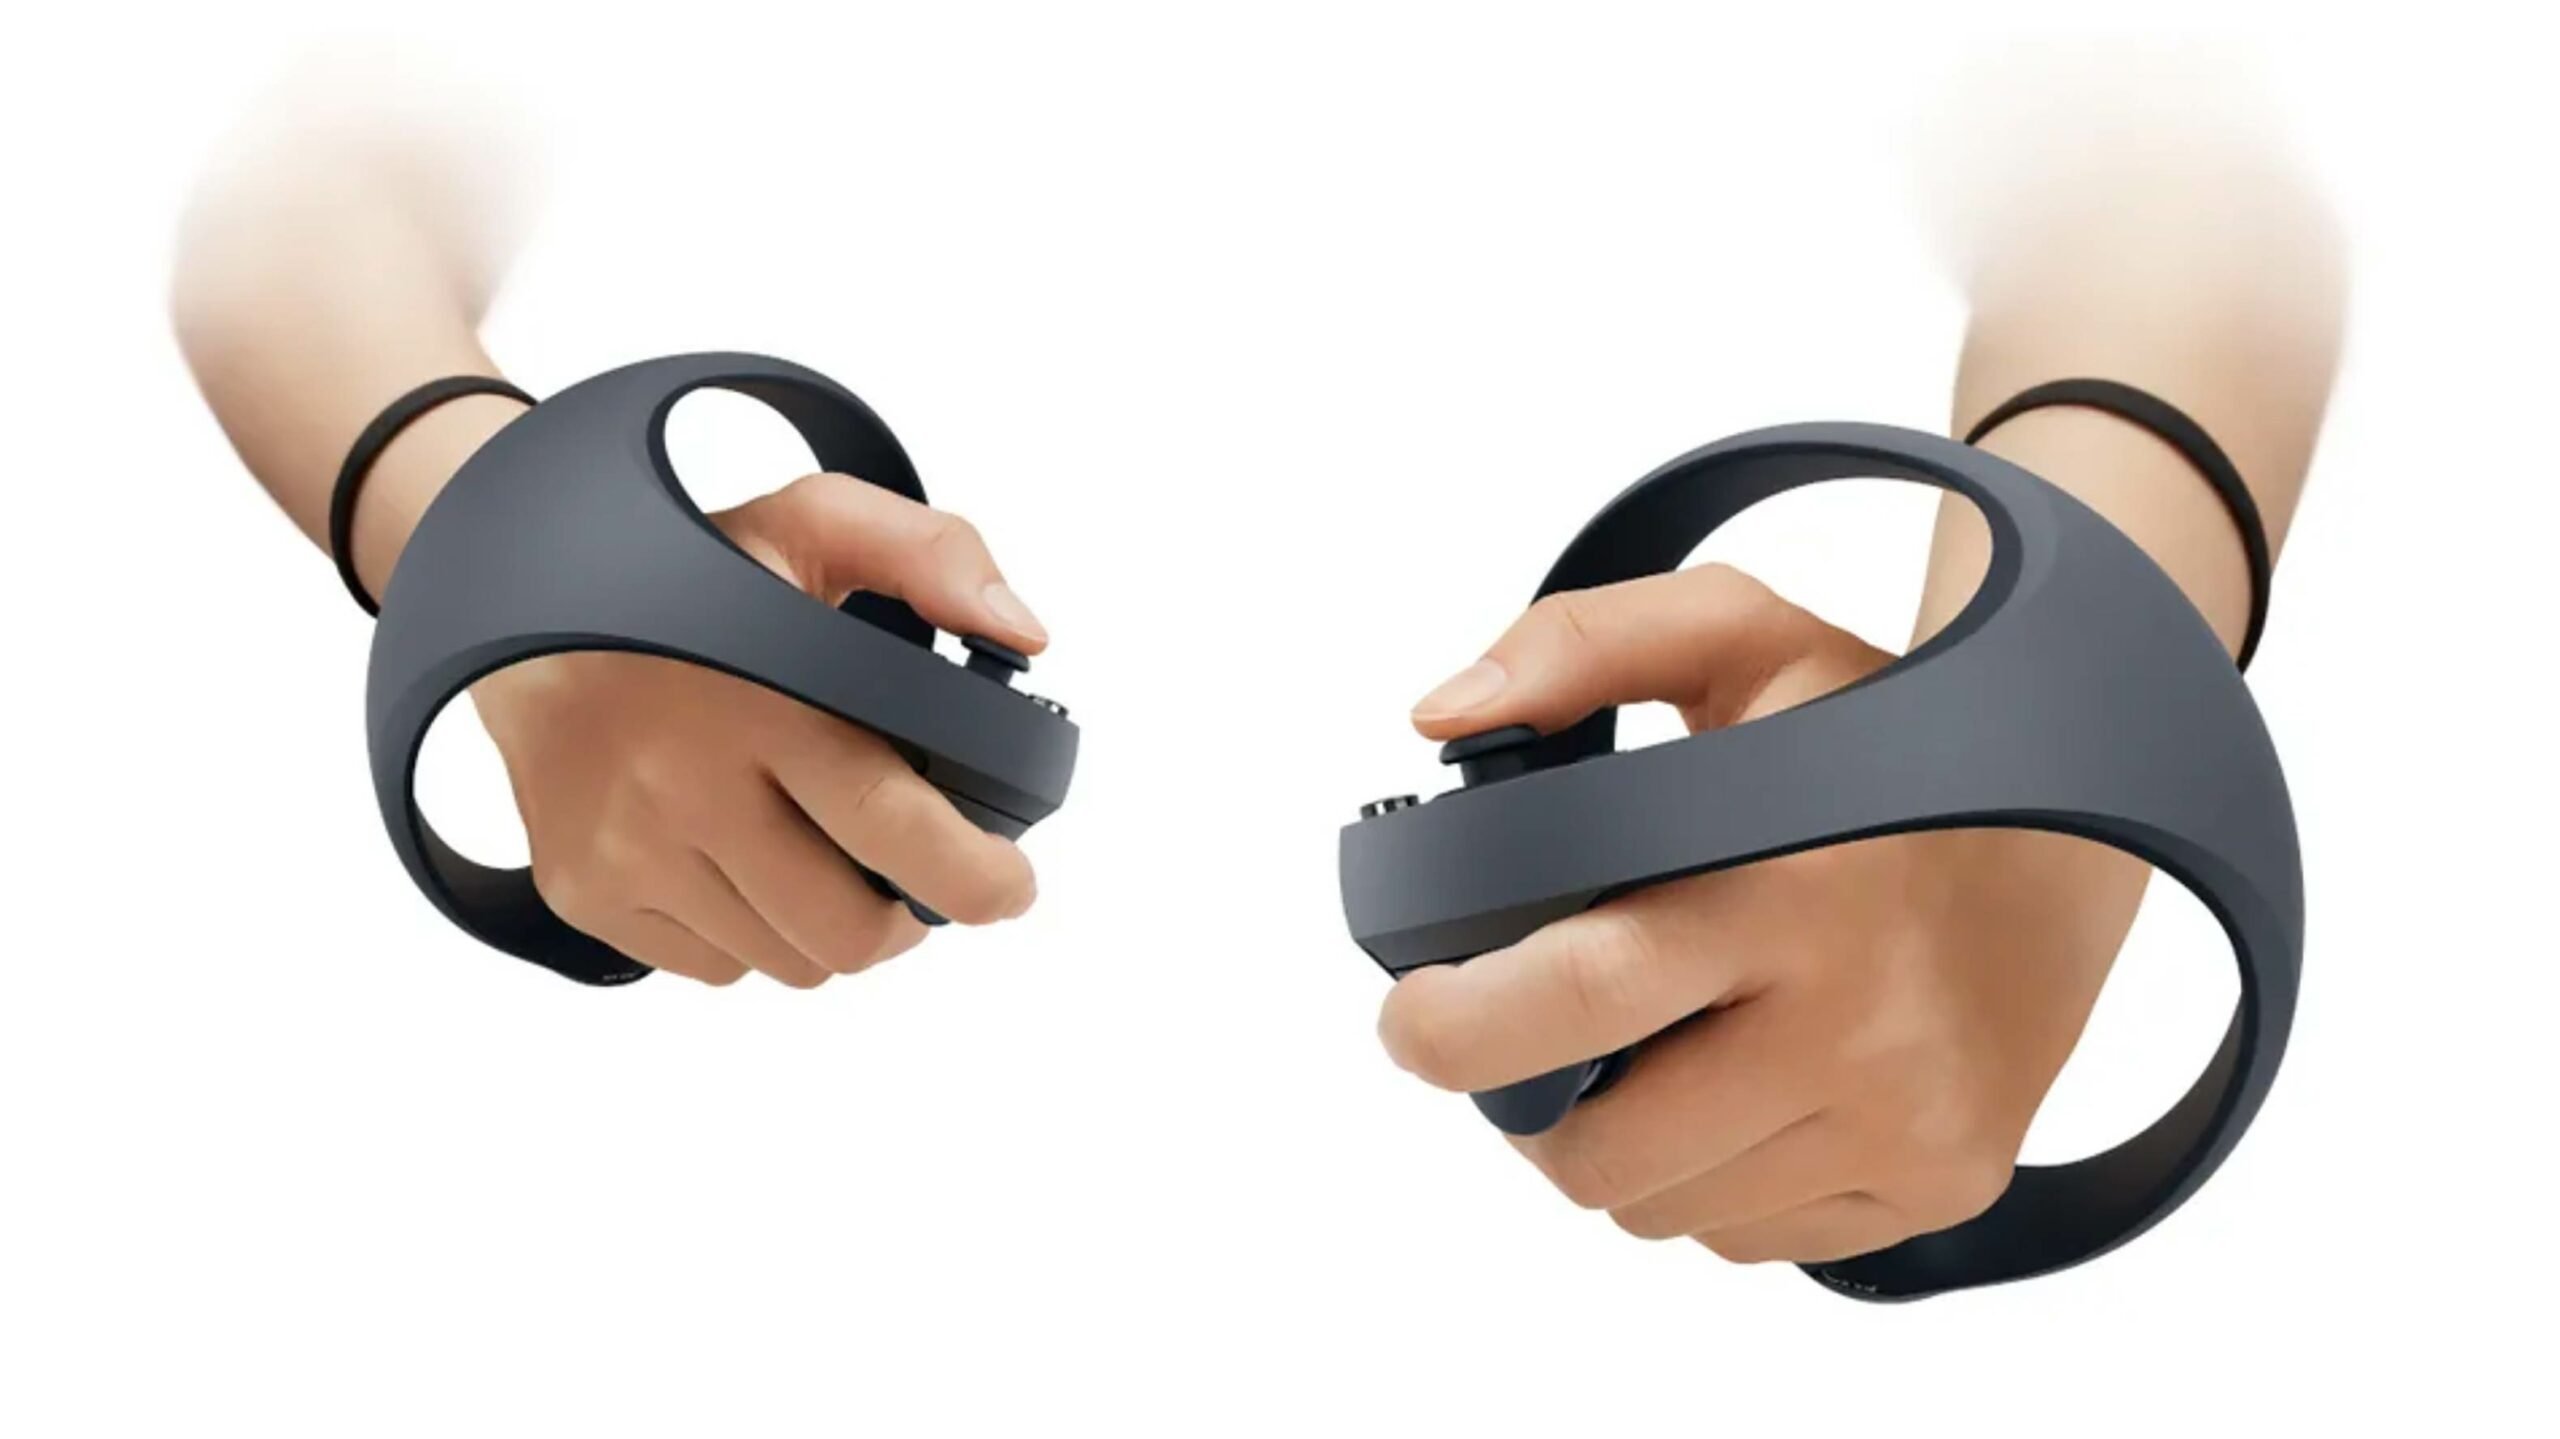 Next-gen PlayStation VR headset to feature 4K and eye-tracking: report